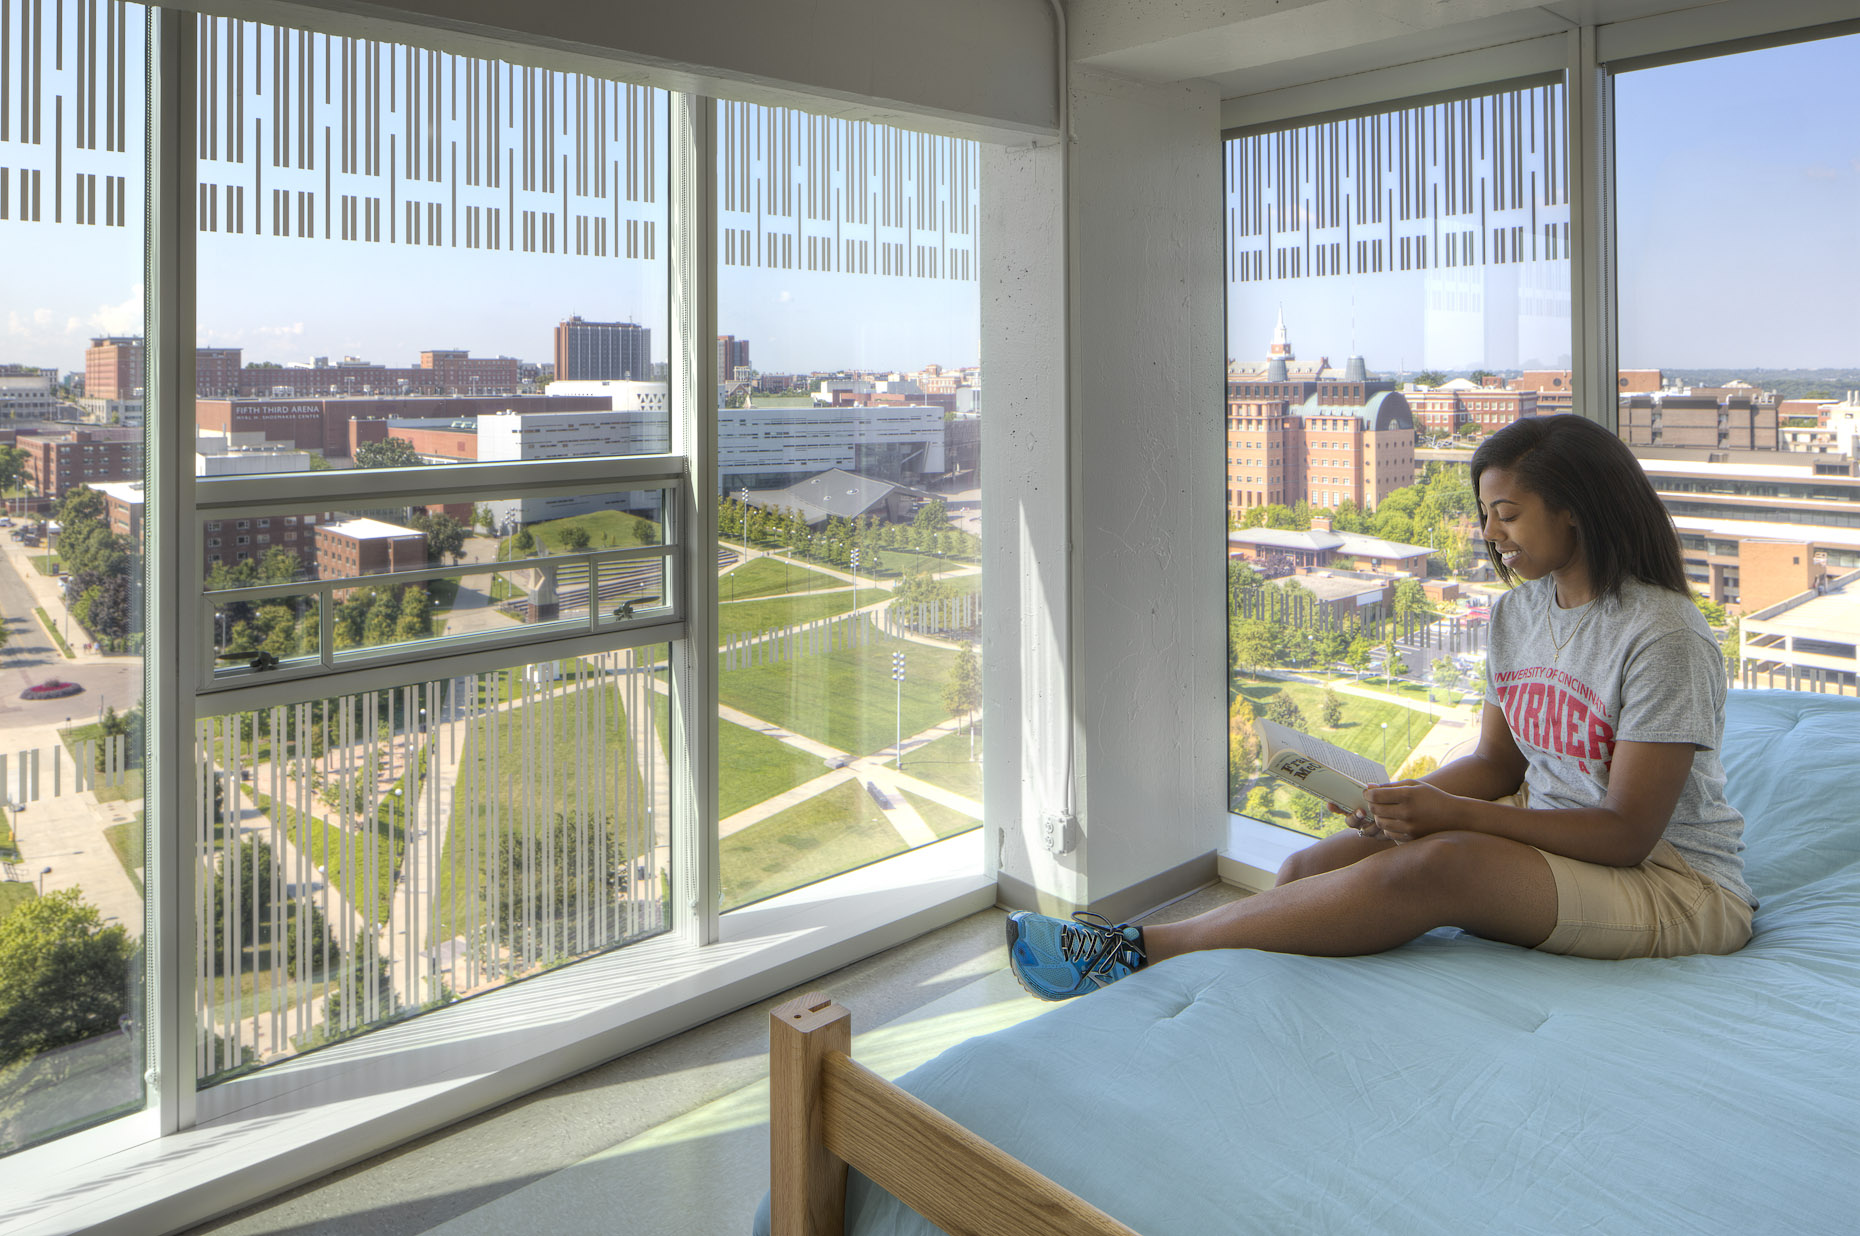 Morgens Hall at the University of Cincinnati by Richard Fleischman + Partners Architects